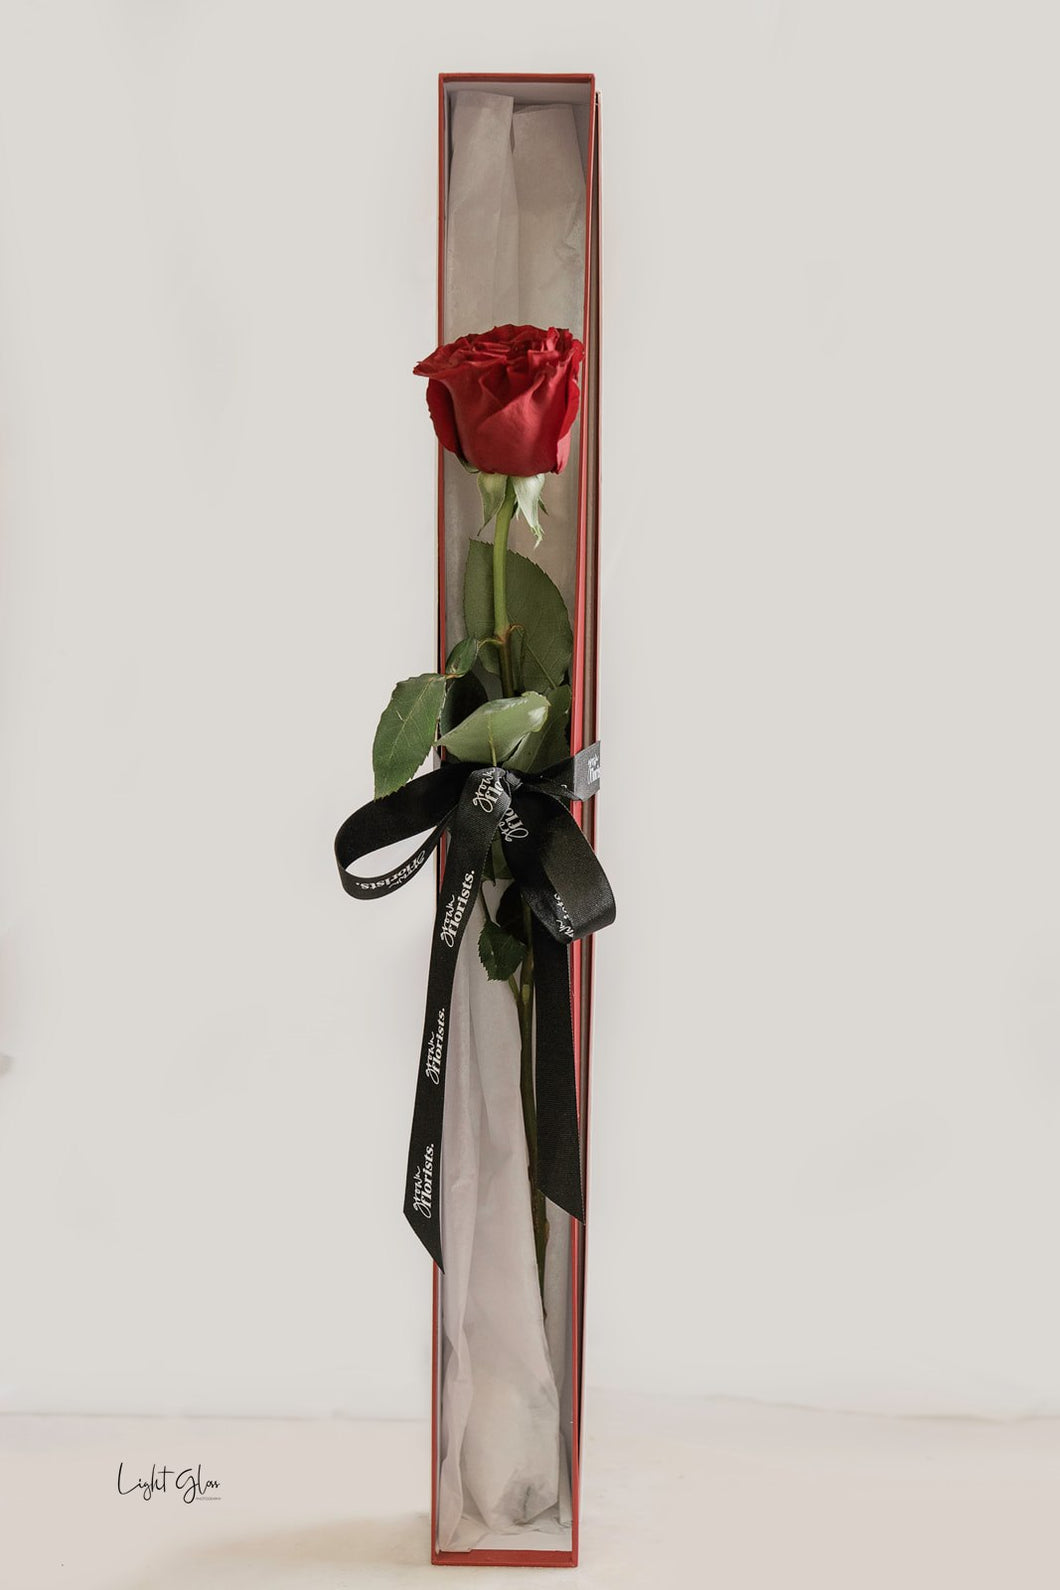 A single rose in gift box